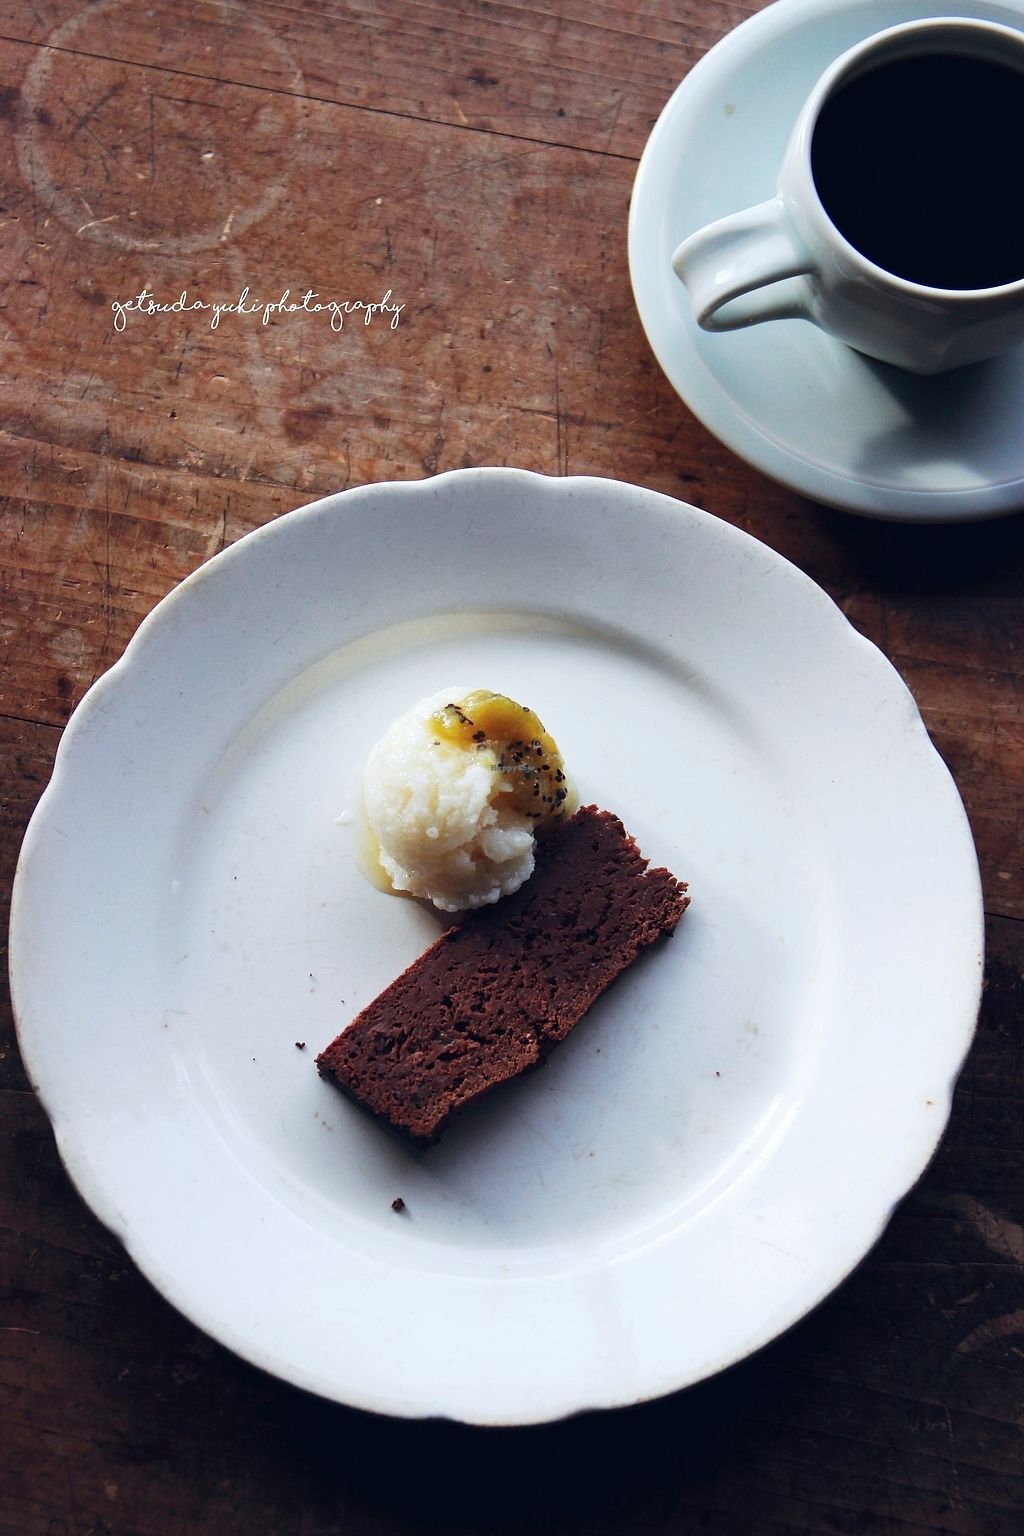 """Photo of Cafe Millet  by <a href=""""/members/profile/YukiLim"""">YukiLim</a> <br/>Chocolate cake and amazake ice cream for dessert from Cafe Millet <br/> July 16, 2017  - <a href='/contact/abuse/image/64558/280877'>Report</a>"""